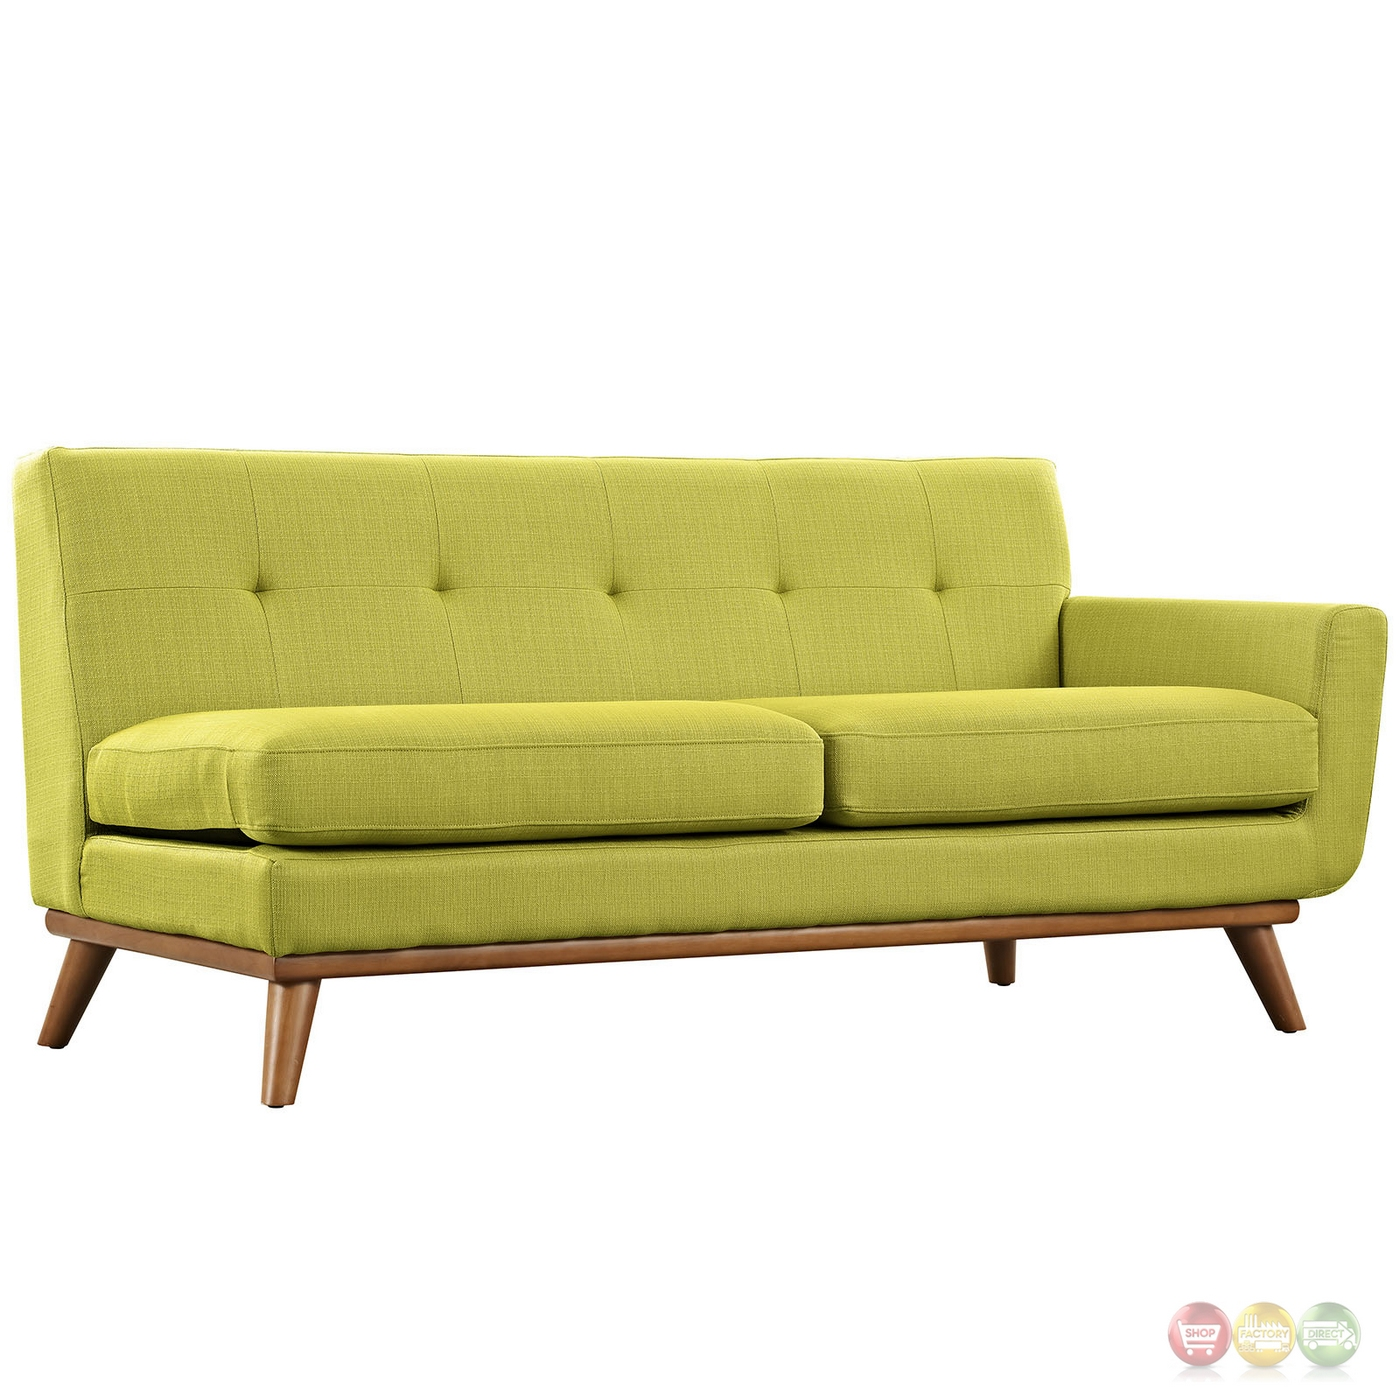 l shaped modern sofa wooden side table engage contemporary sectional with button